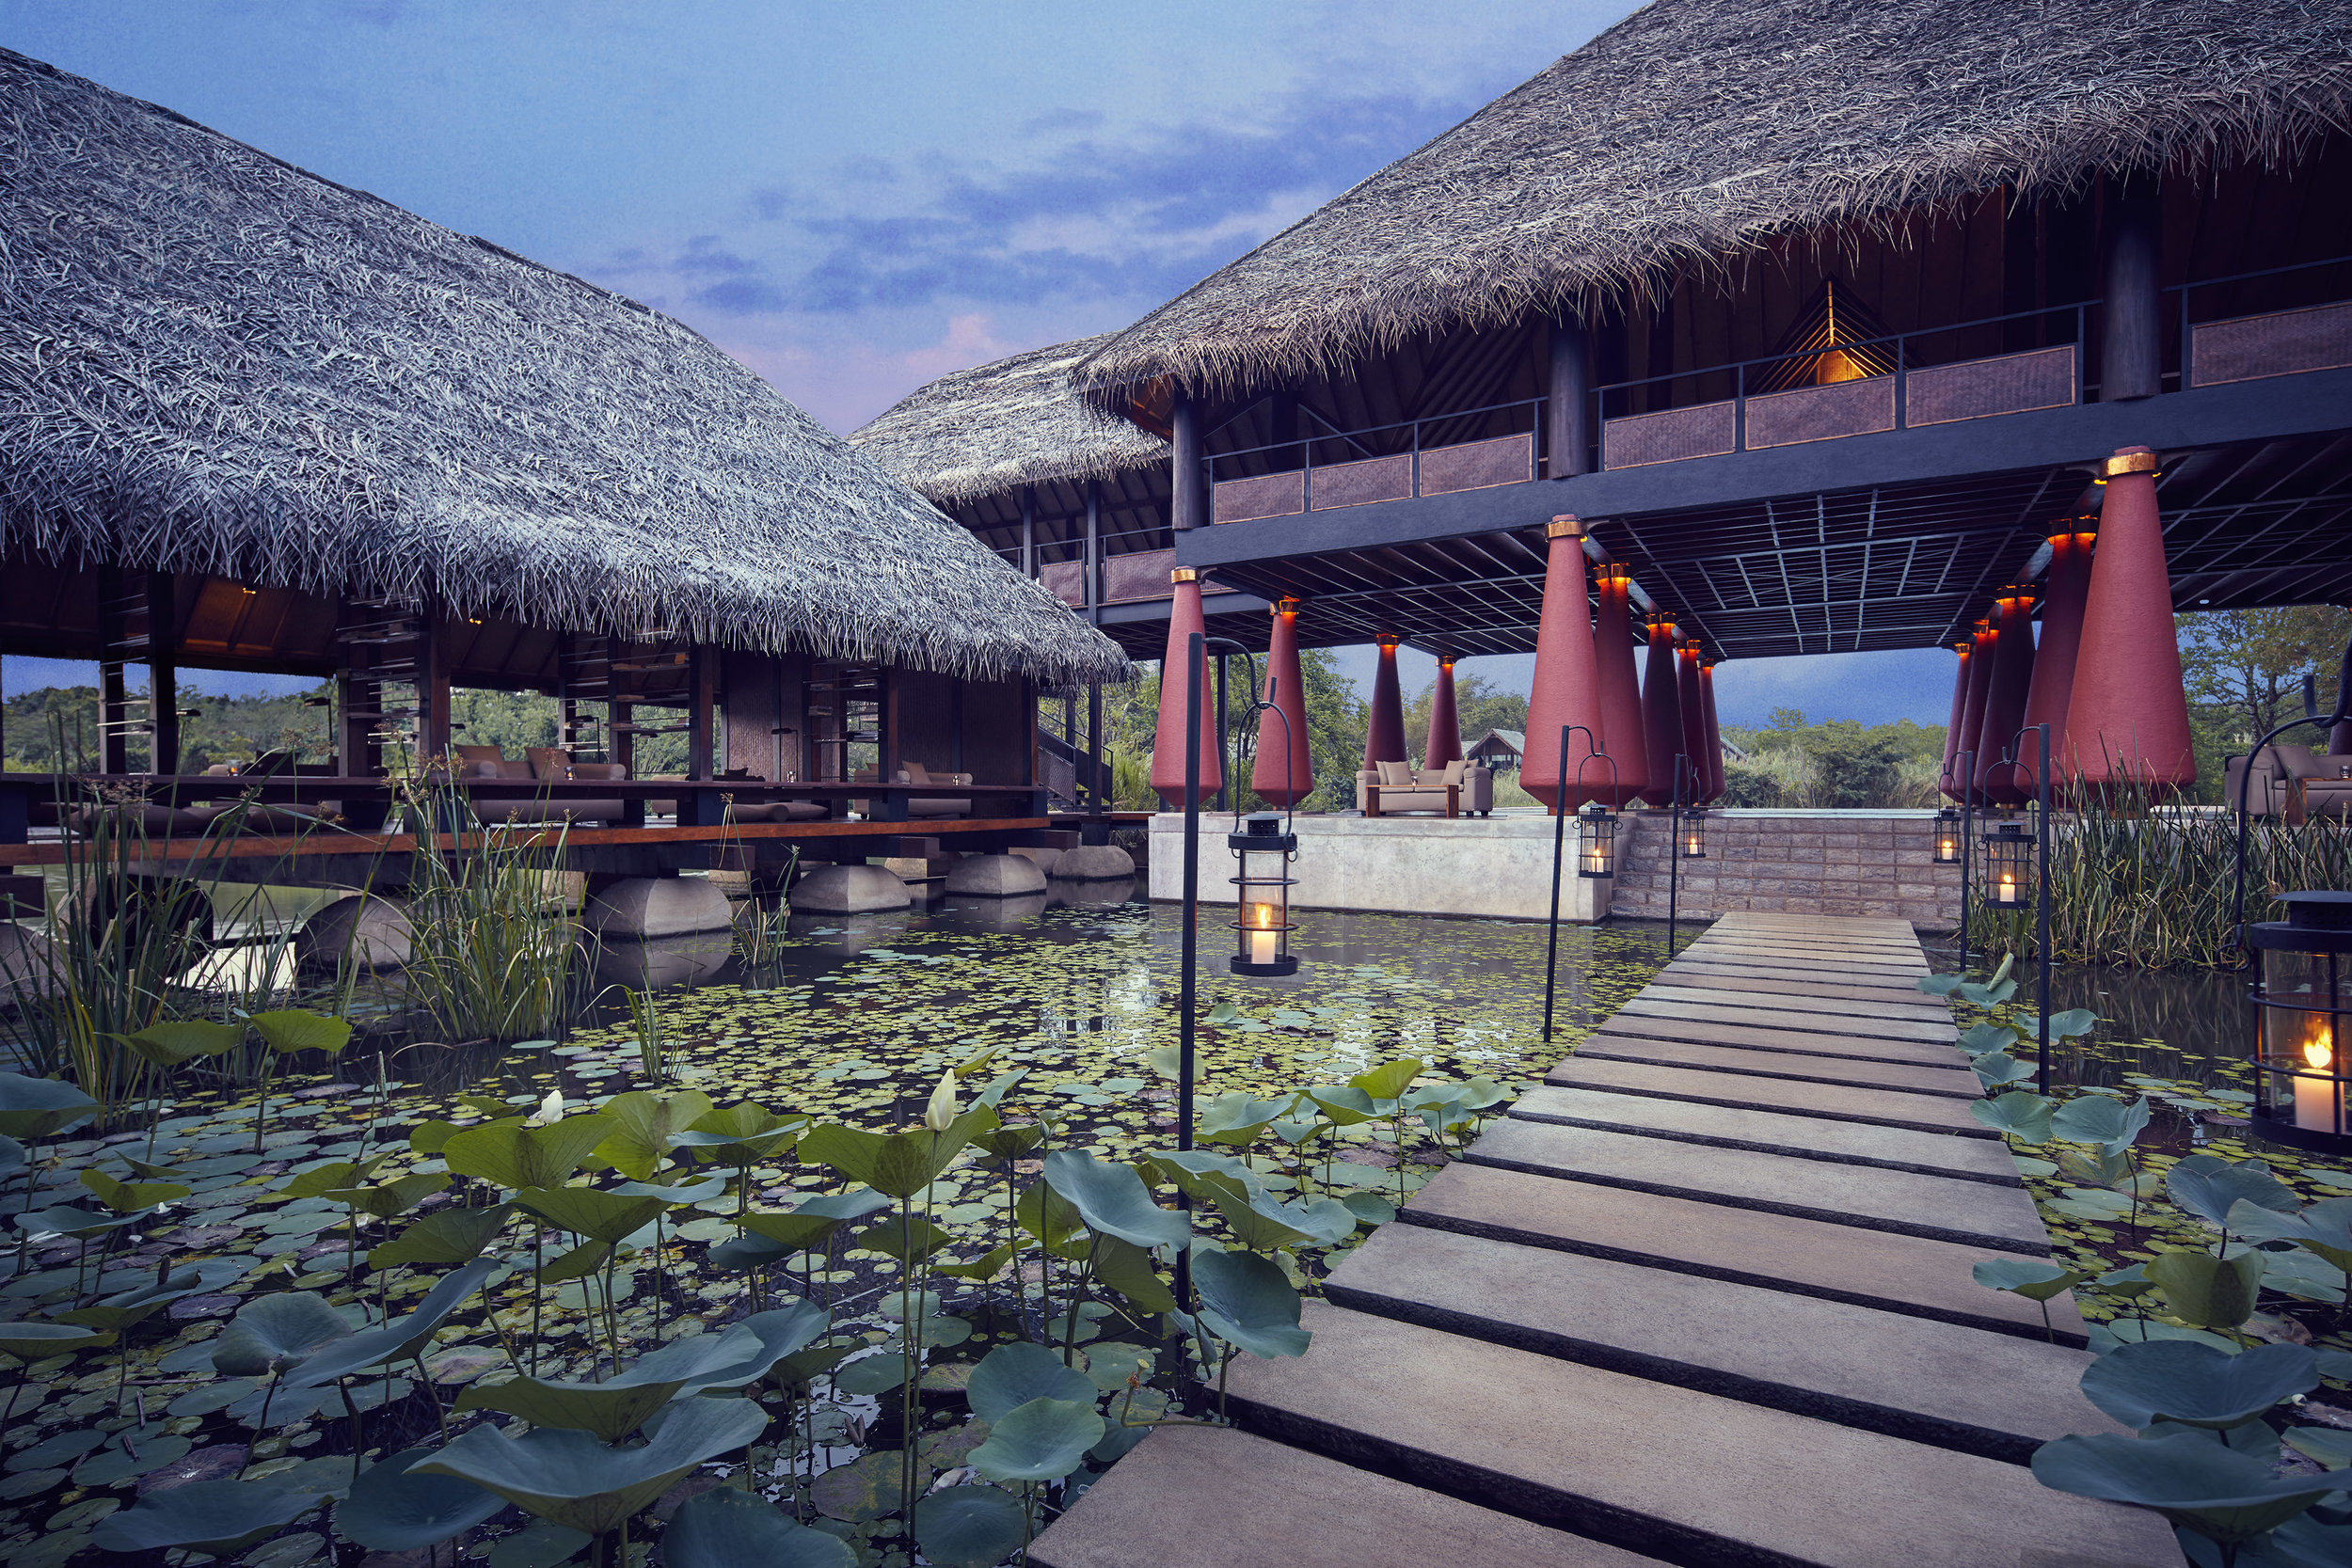 invite-to-paradise-sri-lanka-specialists-experts-travel-agent-tour-operator-jetwing-viluyana-hotel-cultural-triangle-sulang-cafe-2.jpg